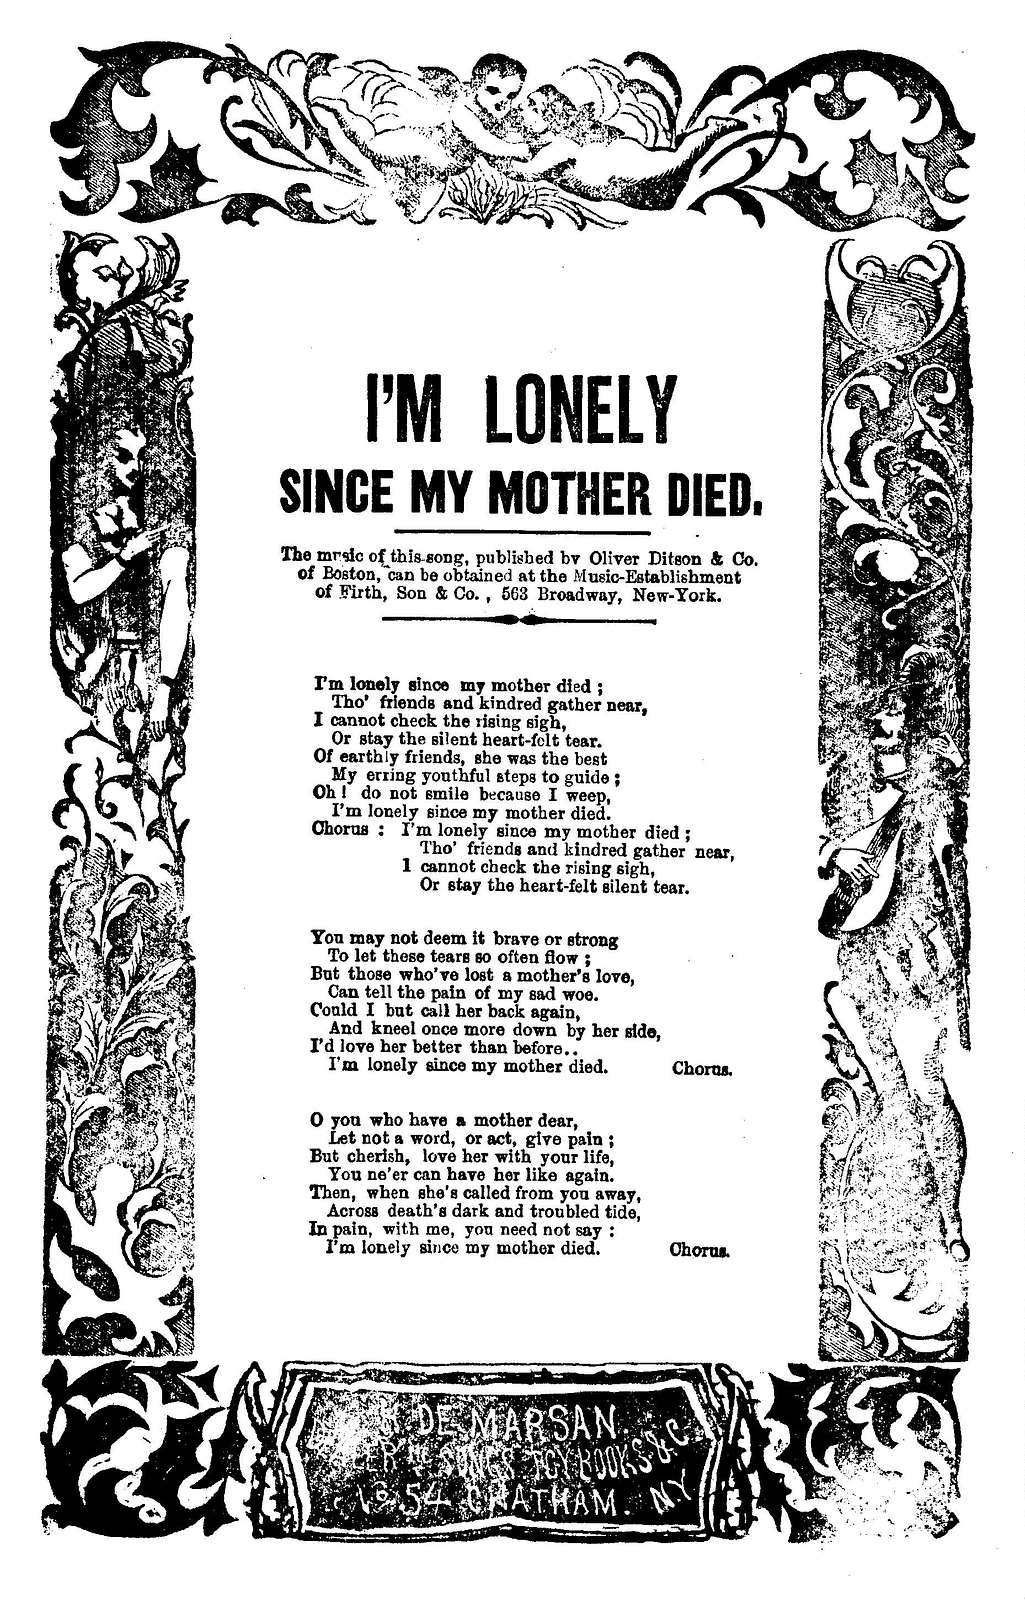 I'm lonely since my mother died. H. De Marsan, Publisher, No. 54 Chatham Street, N. Y